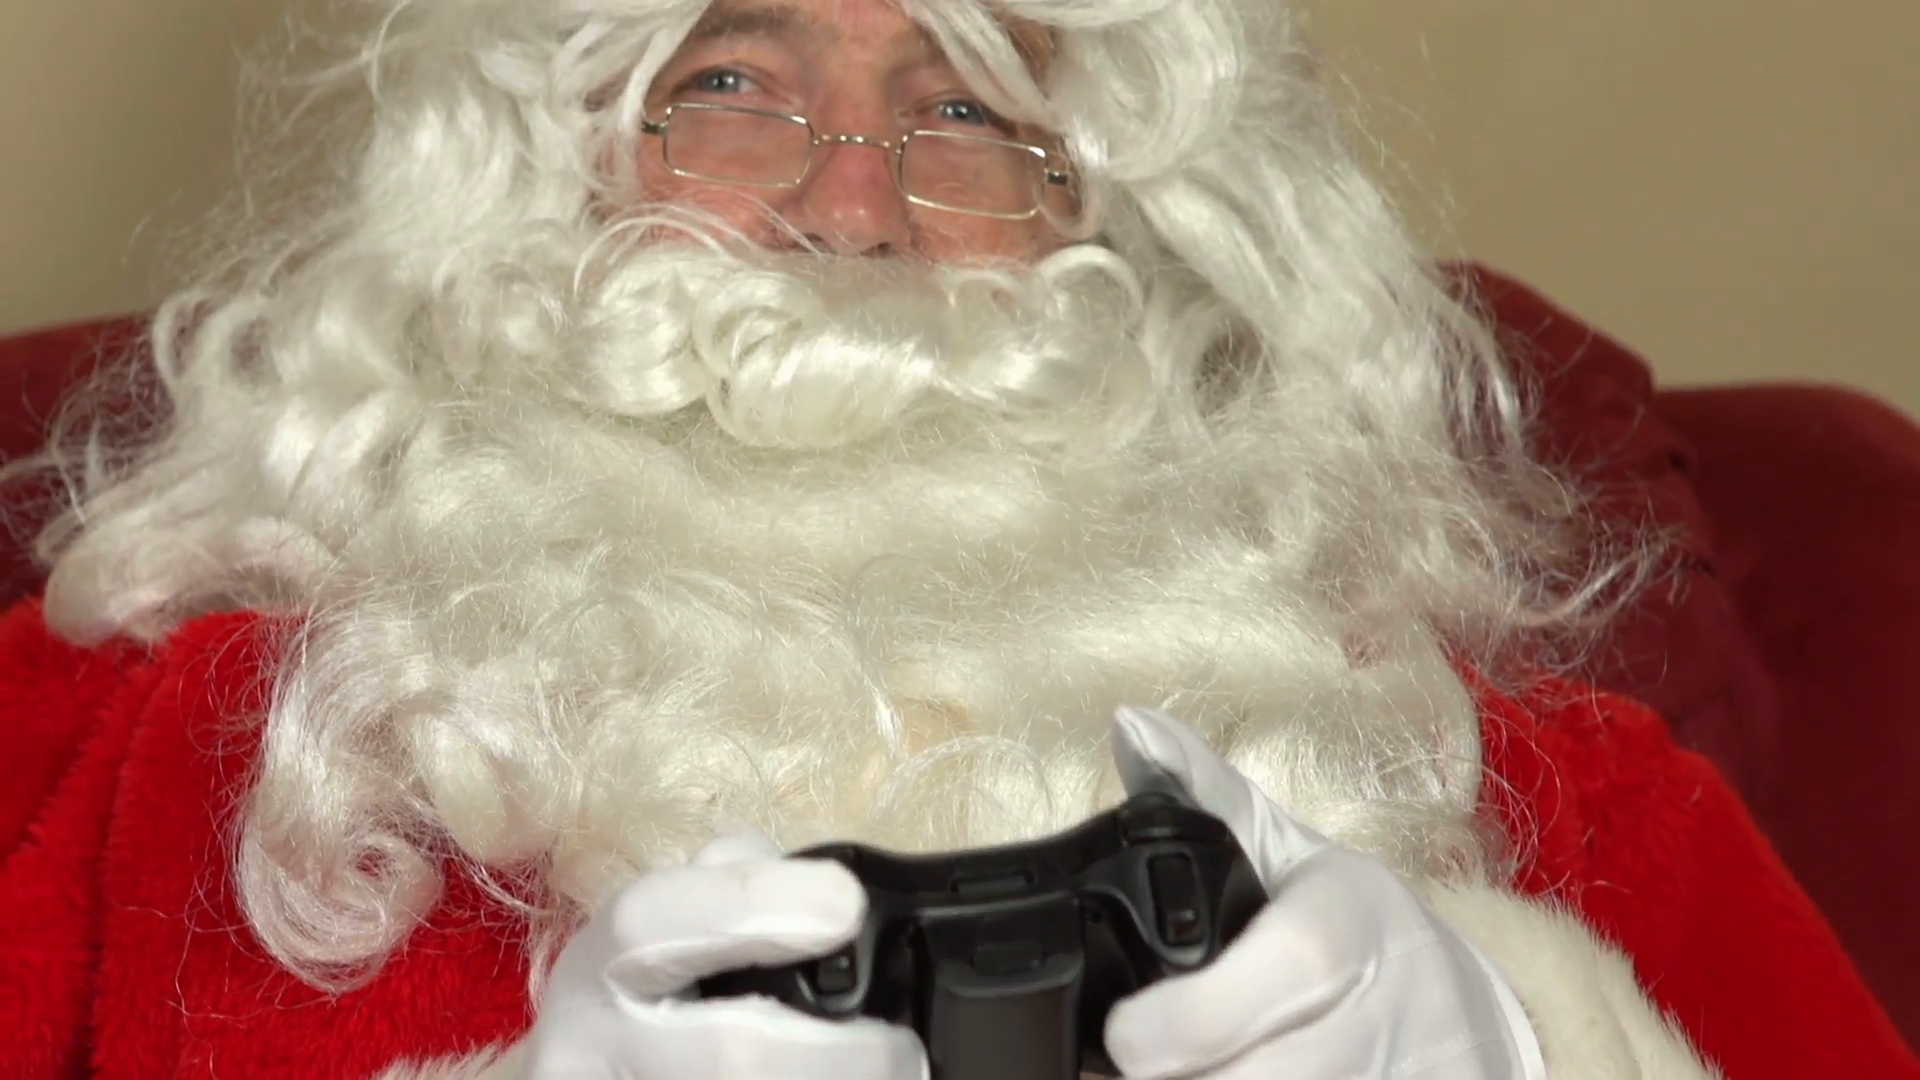 Santa playing video games at Christmas